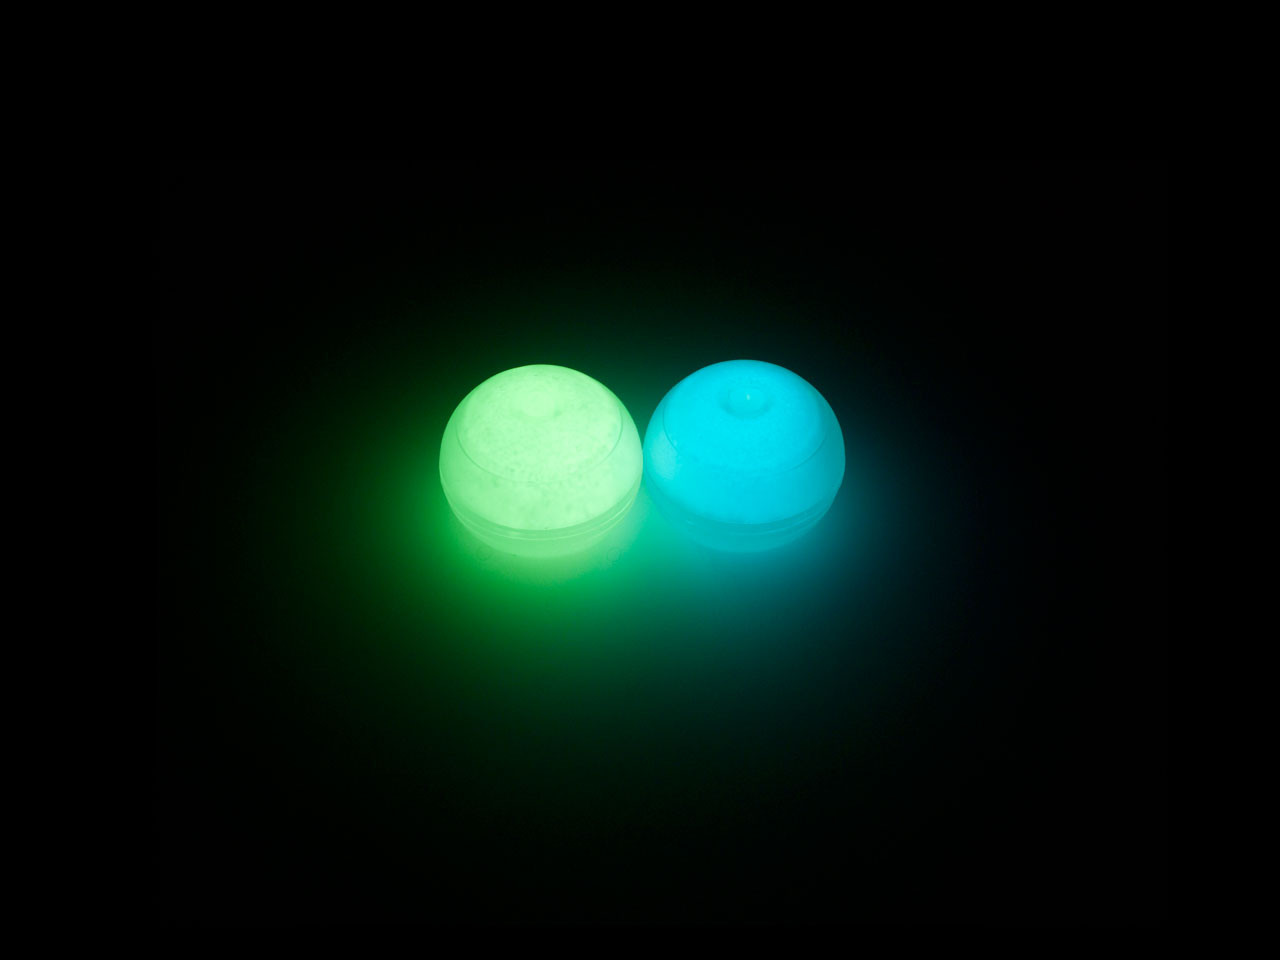 Glow-in-the-Dark PomGrips, Left: Glowstick Green, Right: Aqua Blue